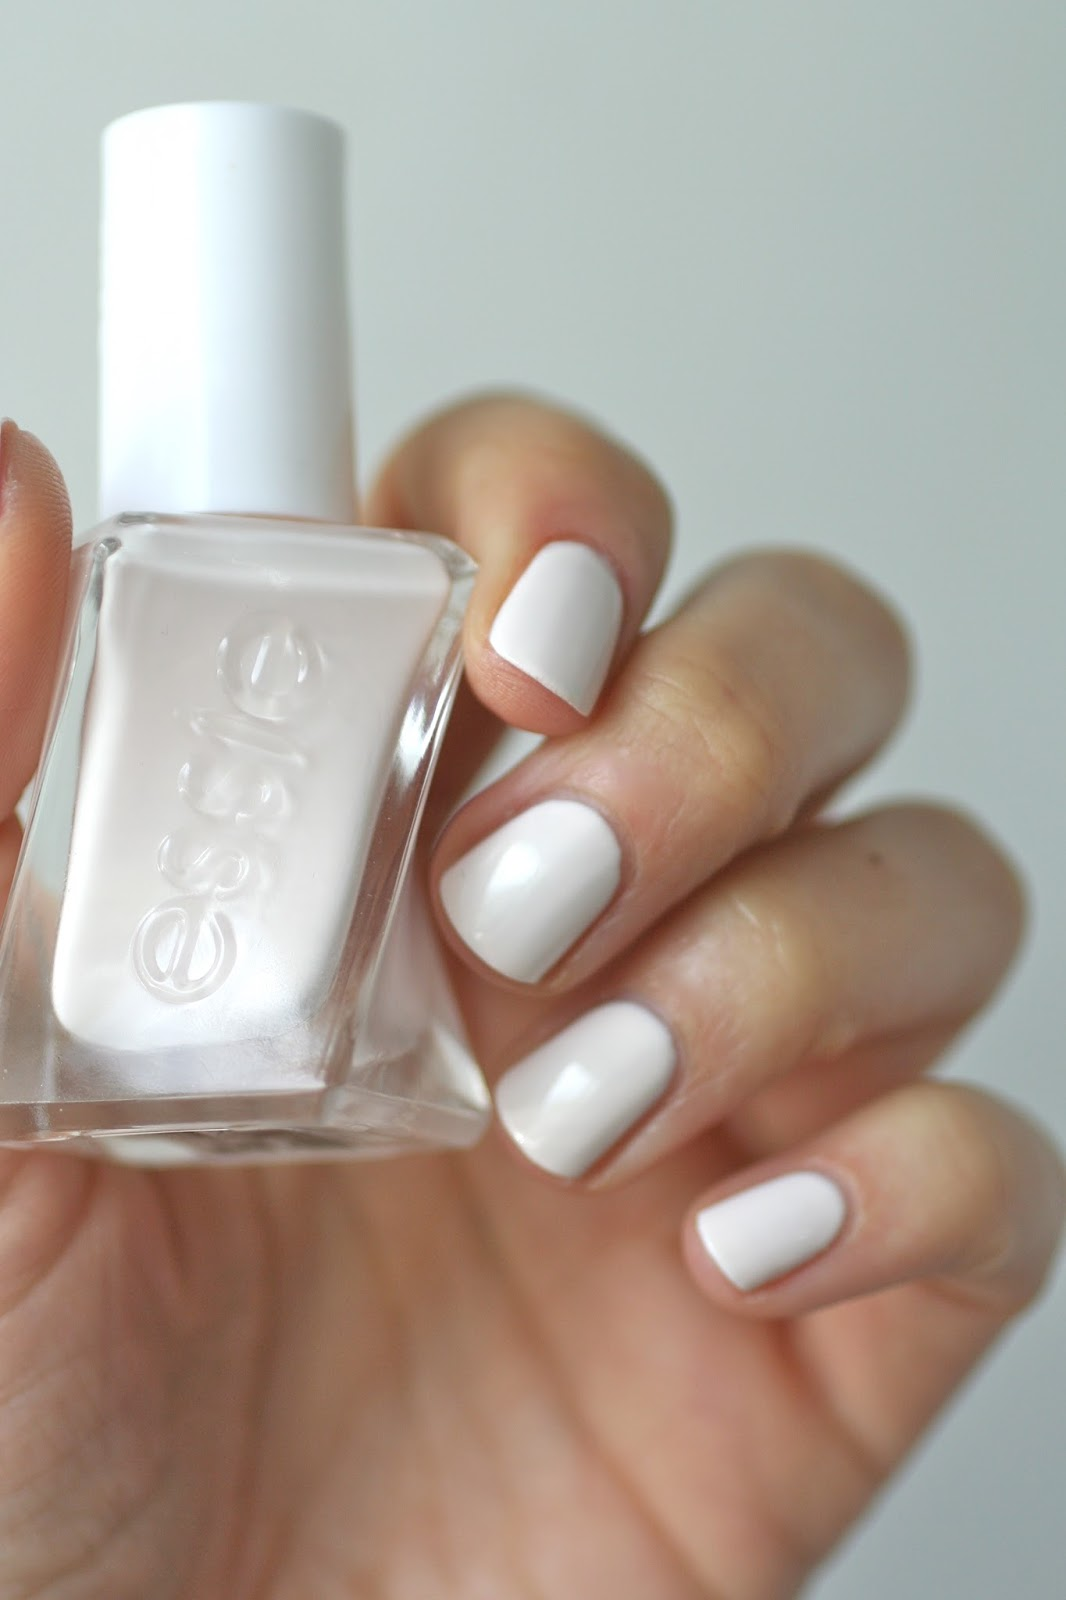 Essie Gel Couture Review - Pre Show Jitters | Essie Envy